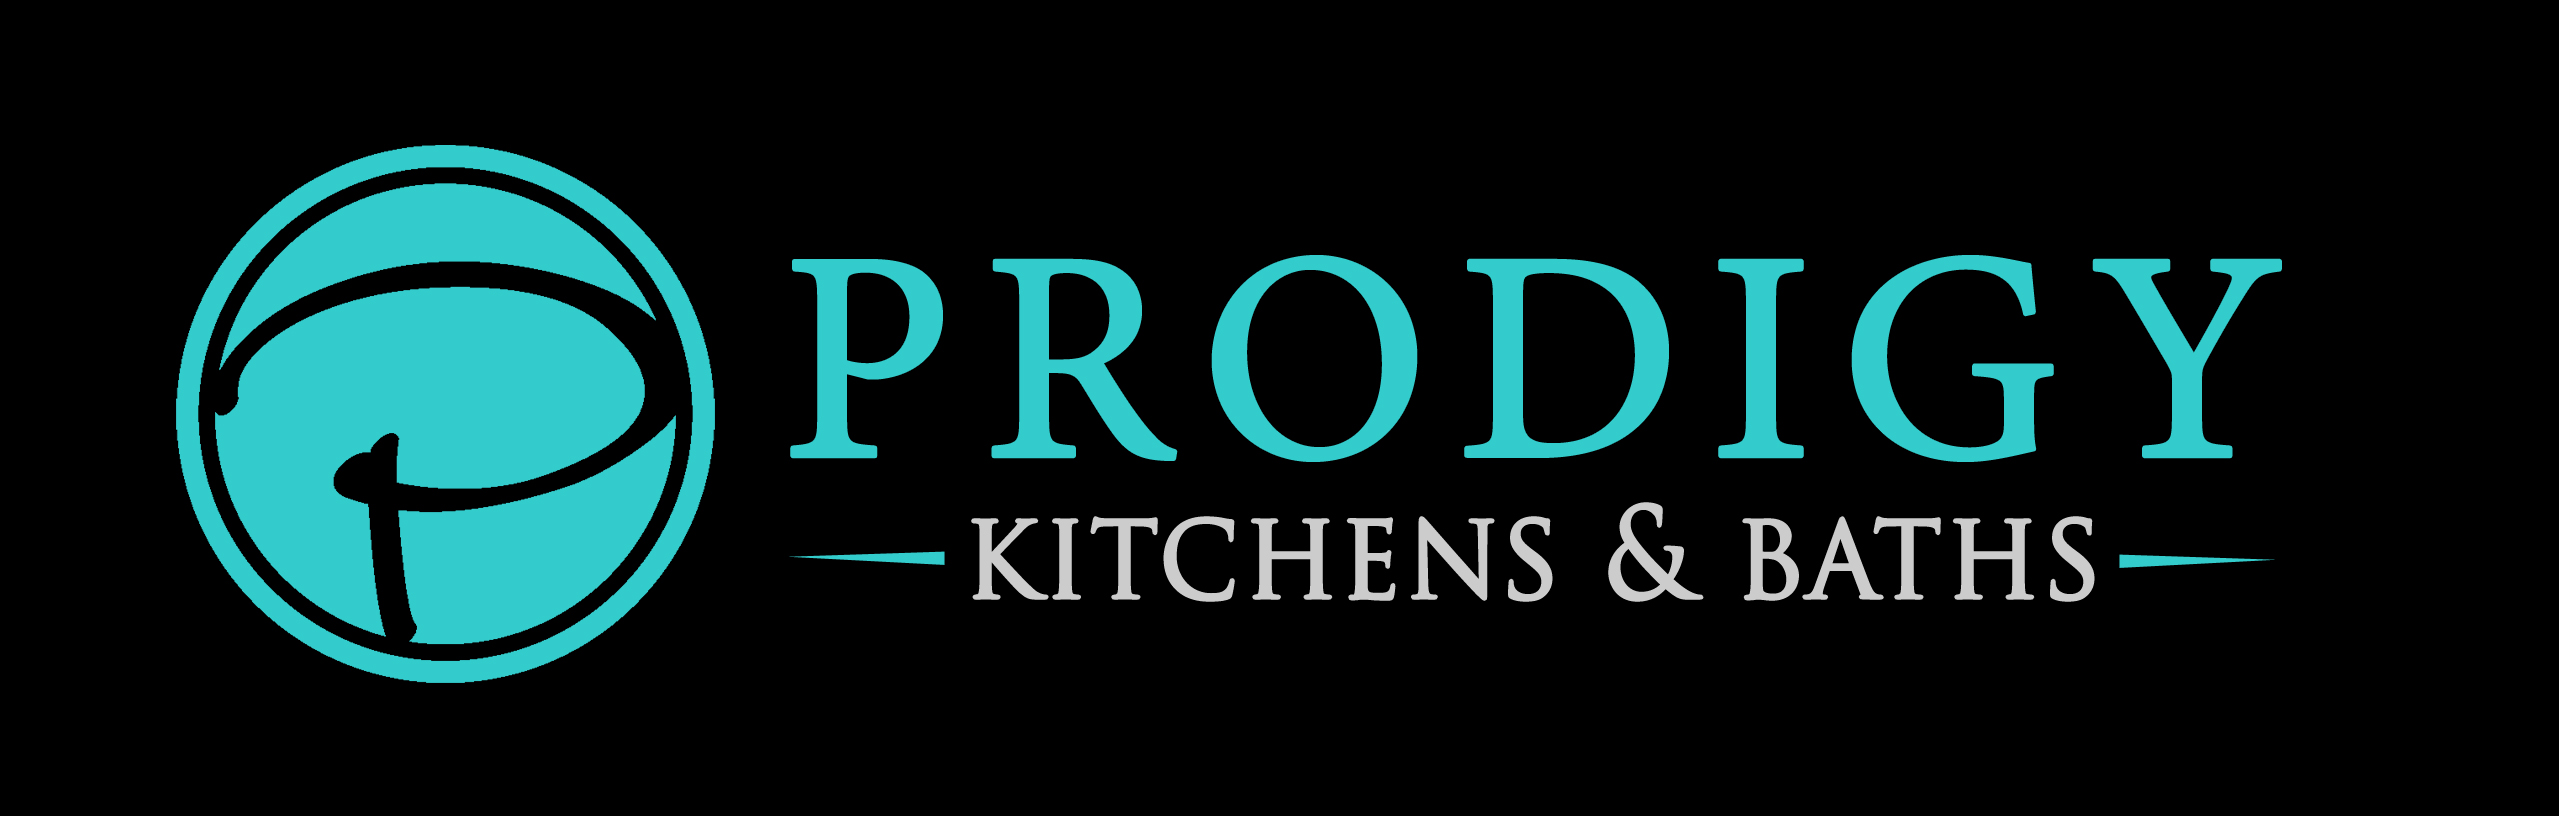 PRODIGY KITCHENS & BATHS - Buliding Industry Synergy Inc